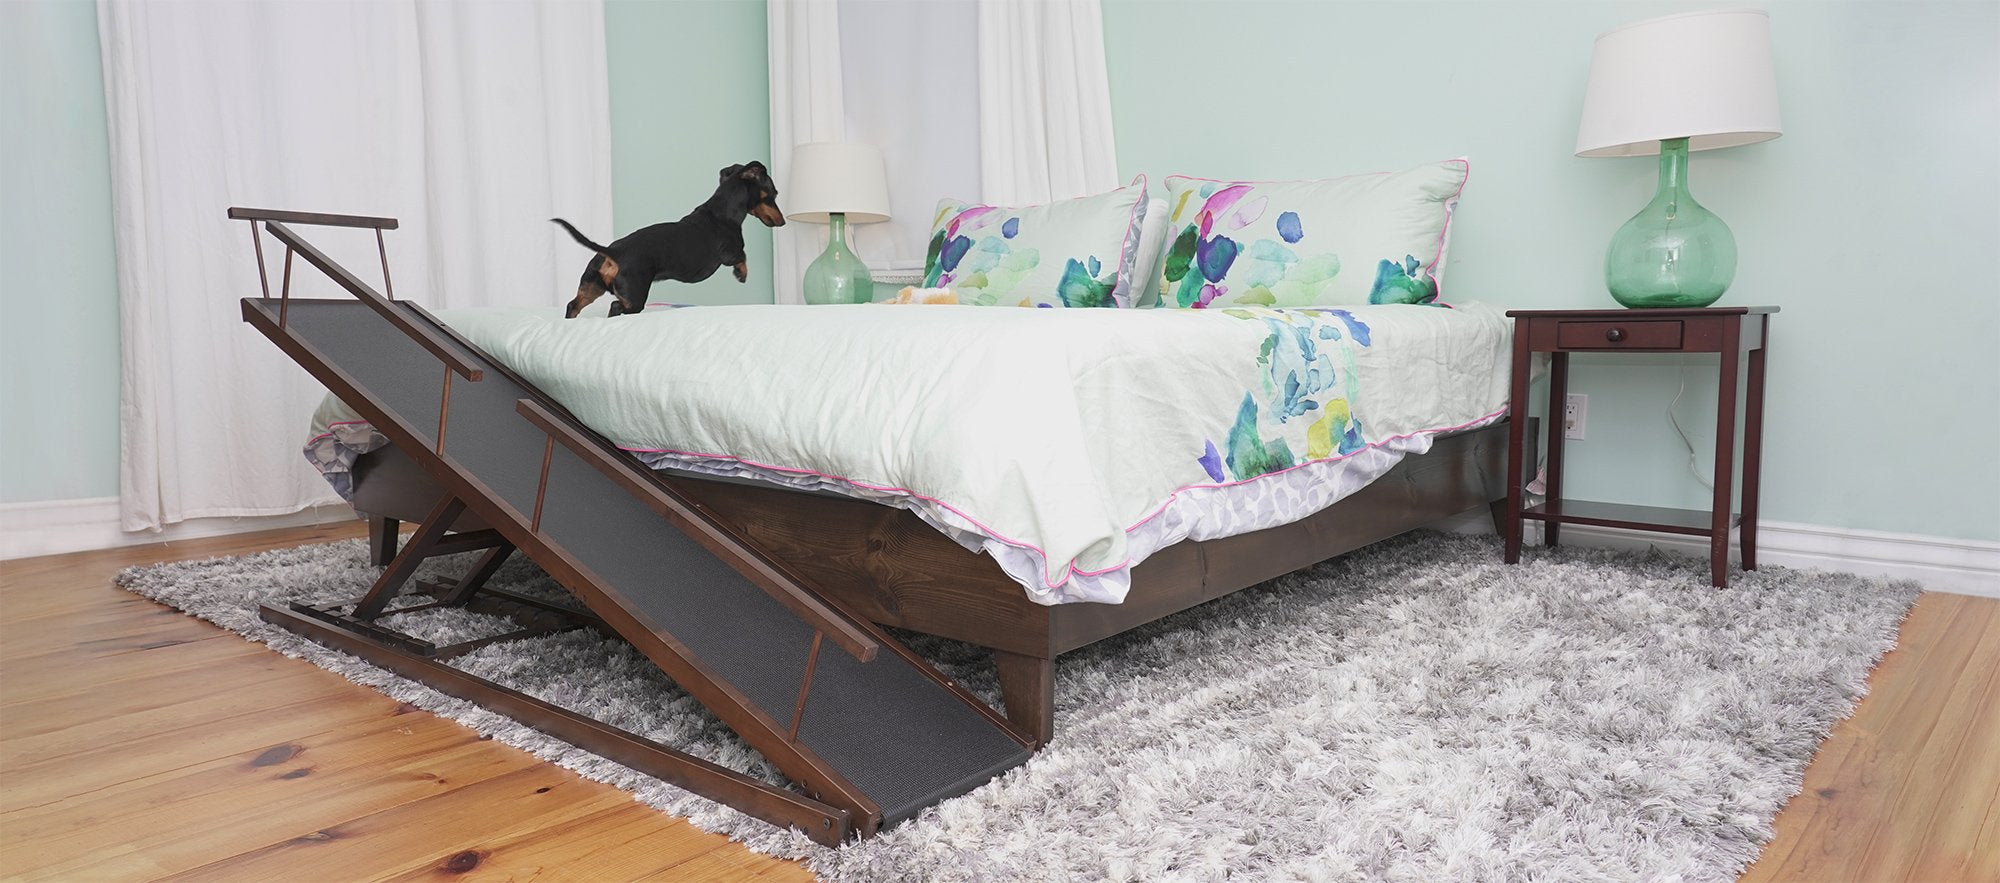 Doggoramps The Best Couch Bed Ramps For Dogs Doggoramps Inc